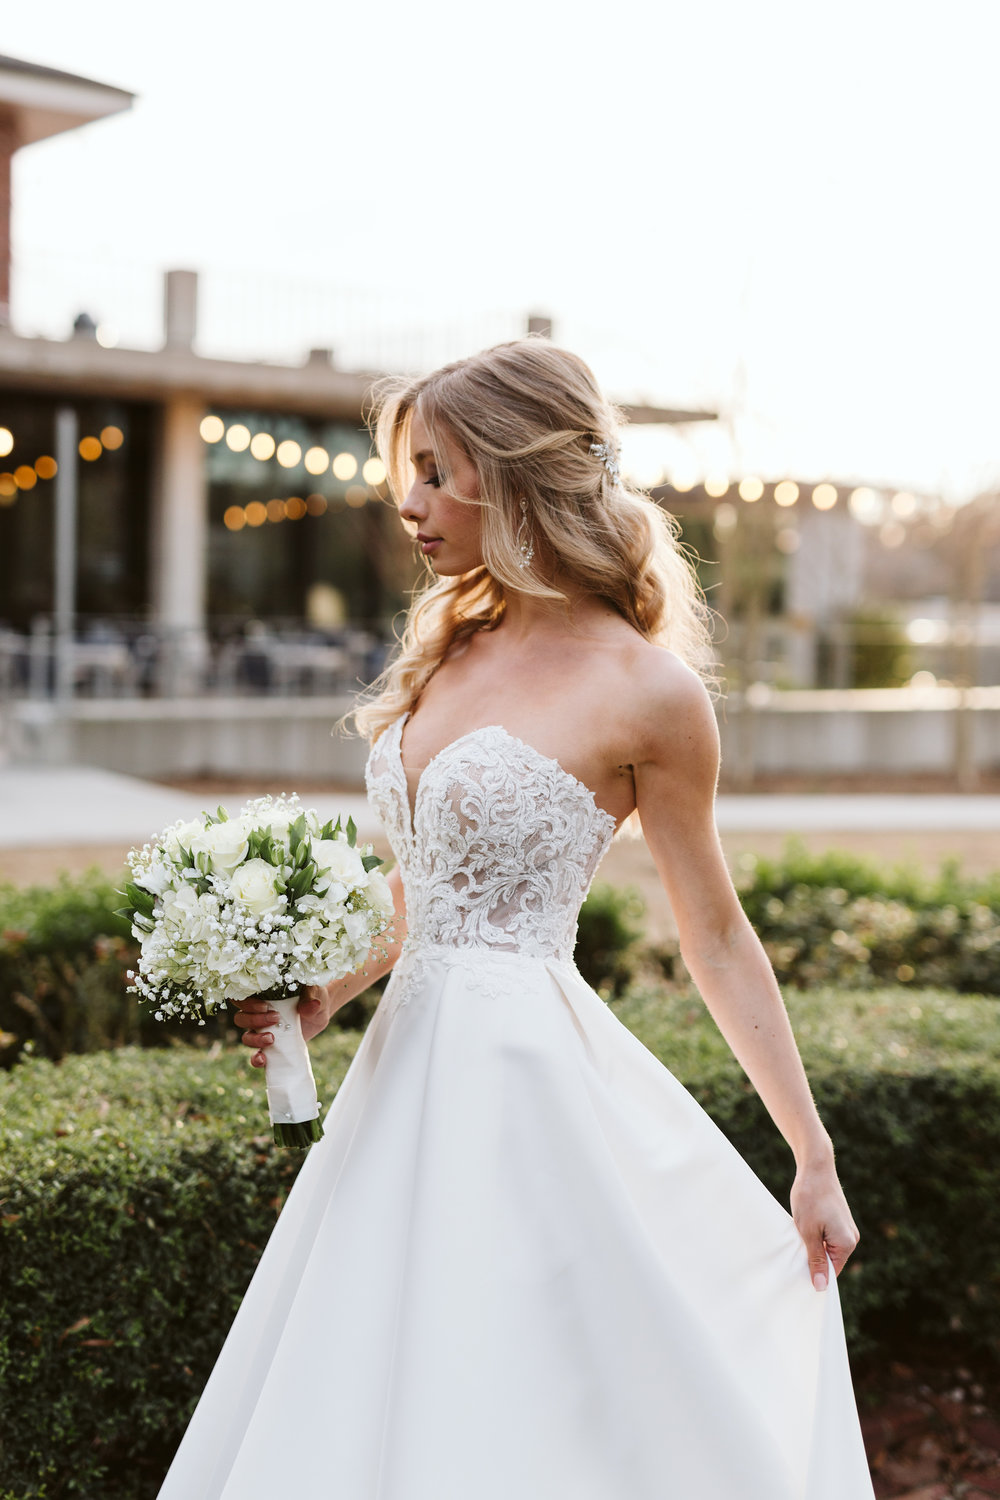 furman-university-bridals-paige-219.JPG